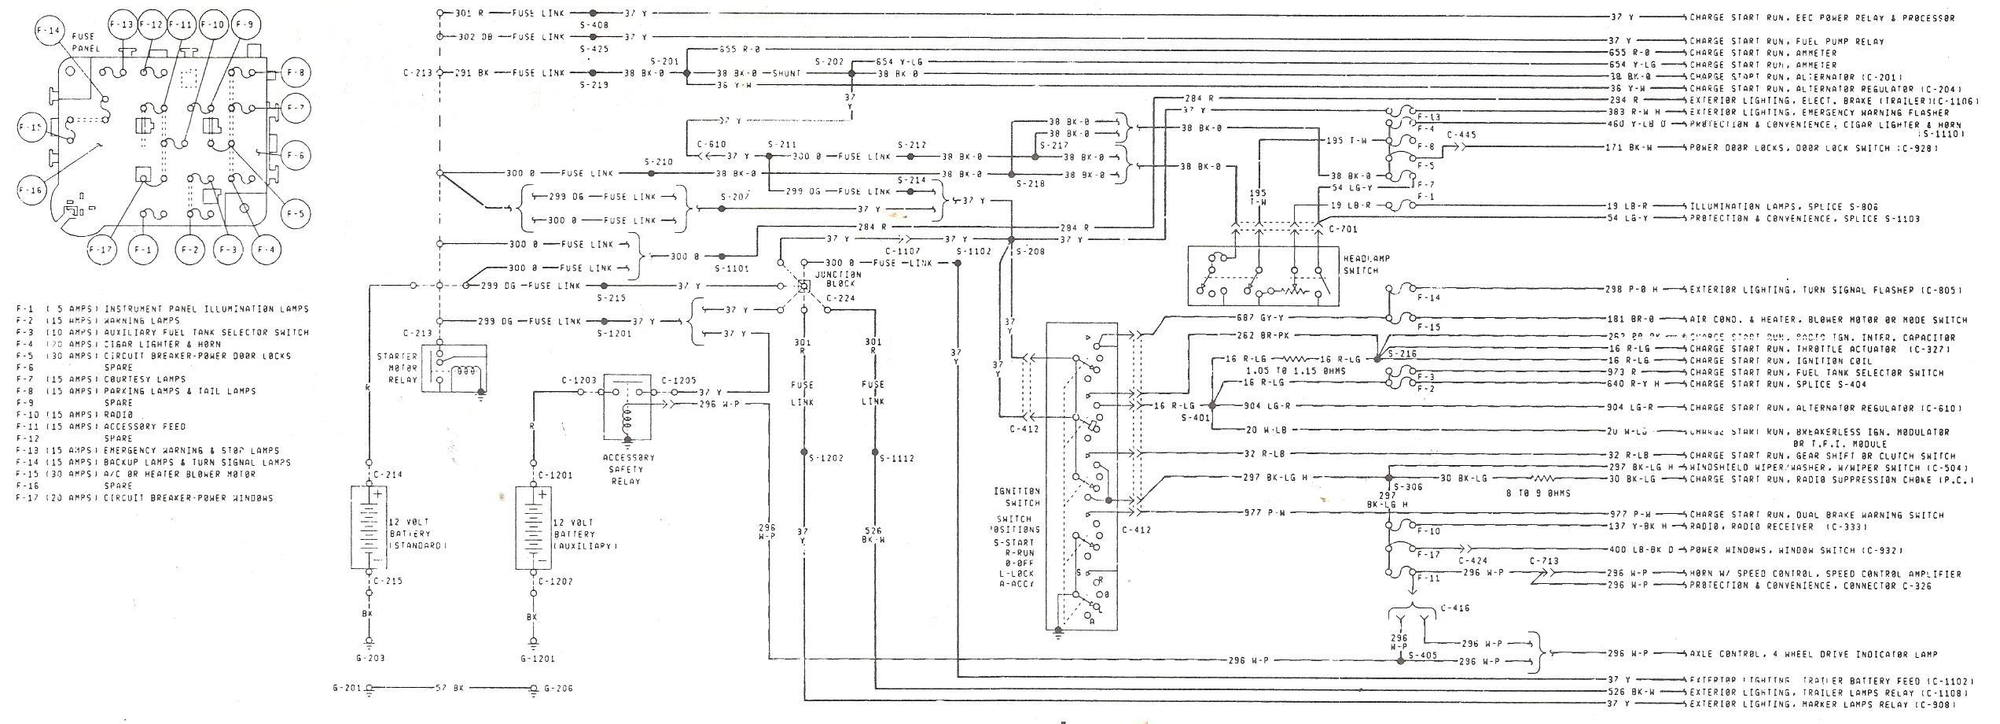 1984 Ford F 150 Alternator Wiring Diagram, 1984, Get Free